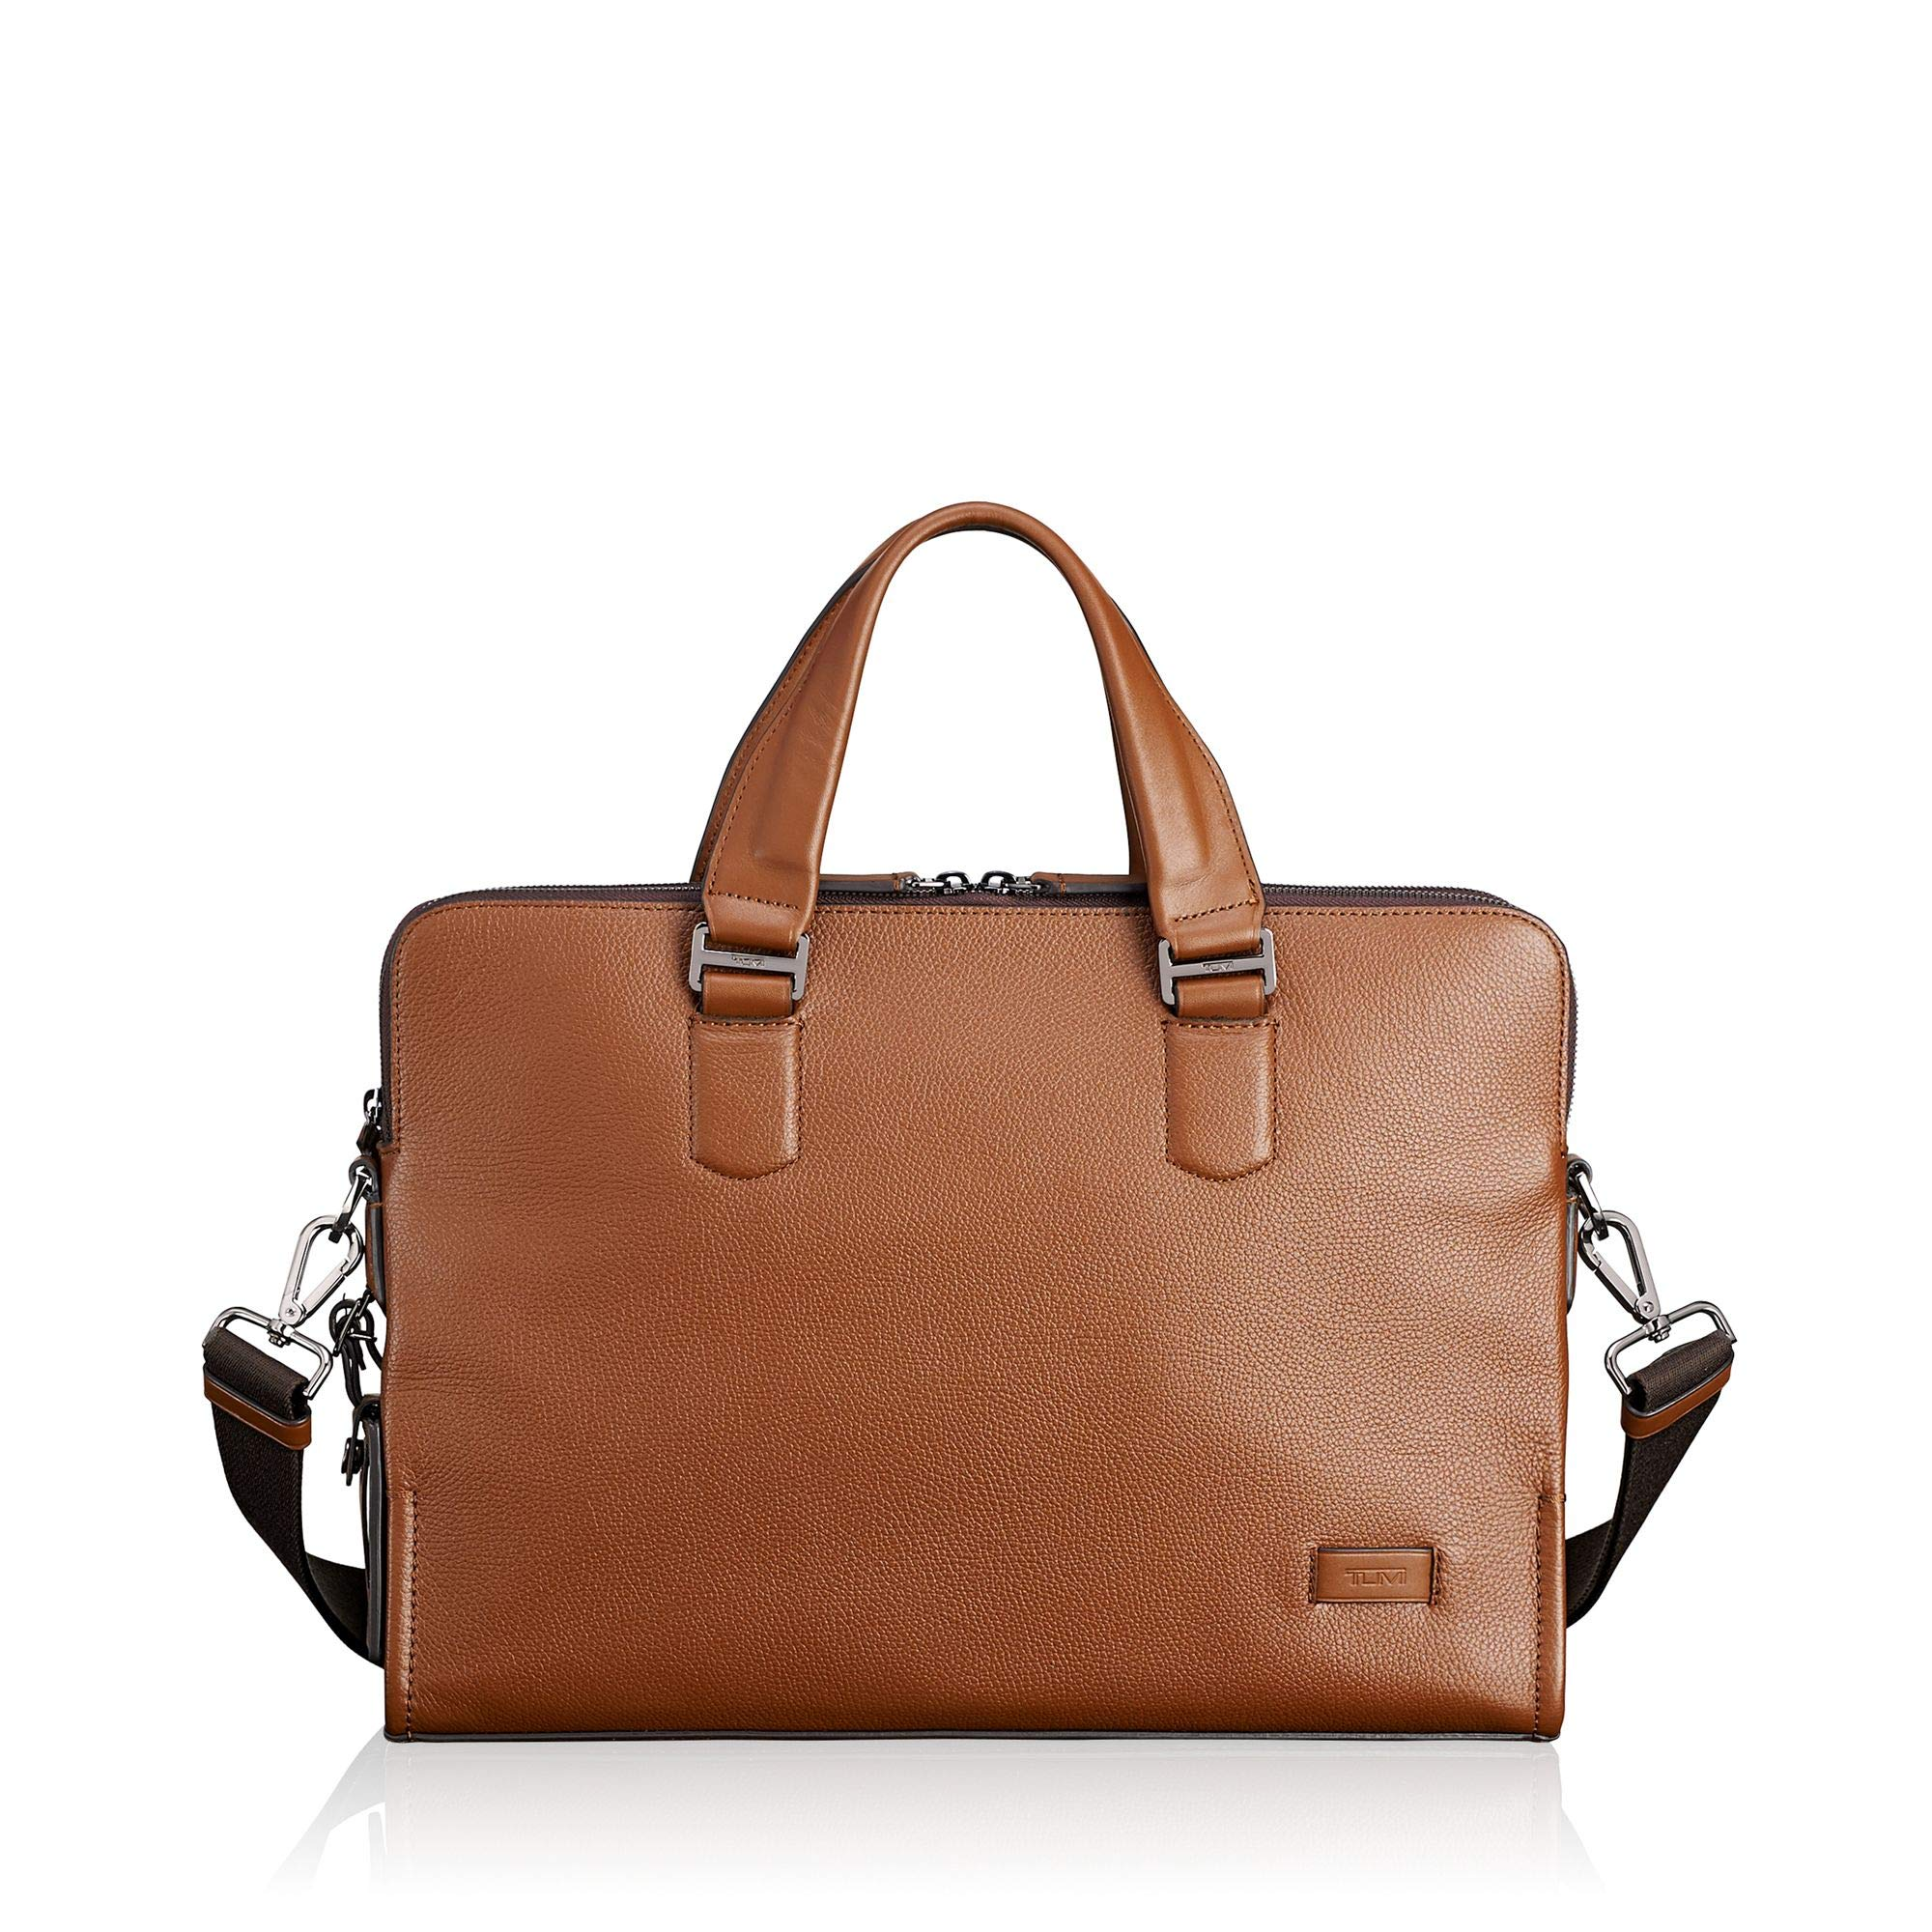 TUMI - Harrison Seneca Leather Laptop Slim Brief Briefcase - 15 Inch Computer Backpack for Men and Women - Umber Pebbled by TUMI